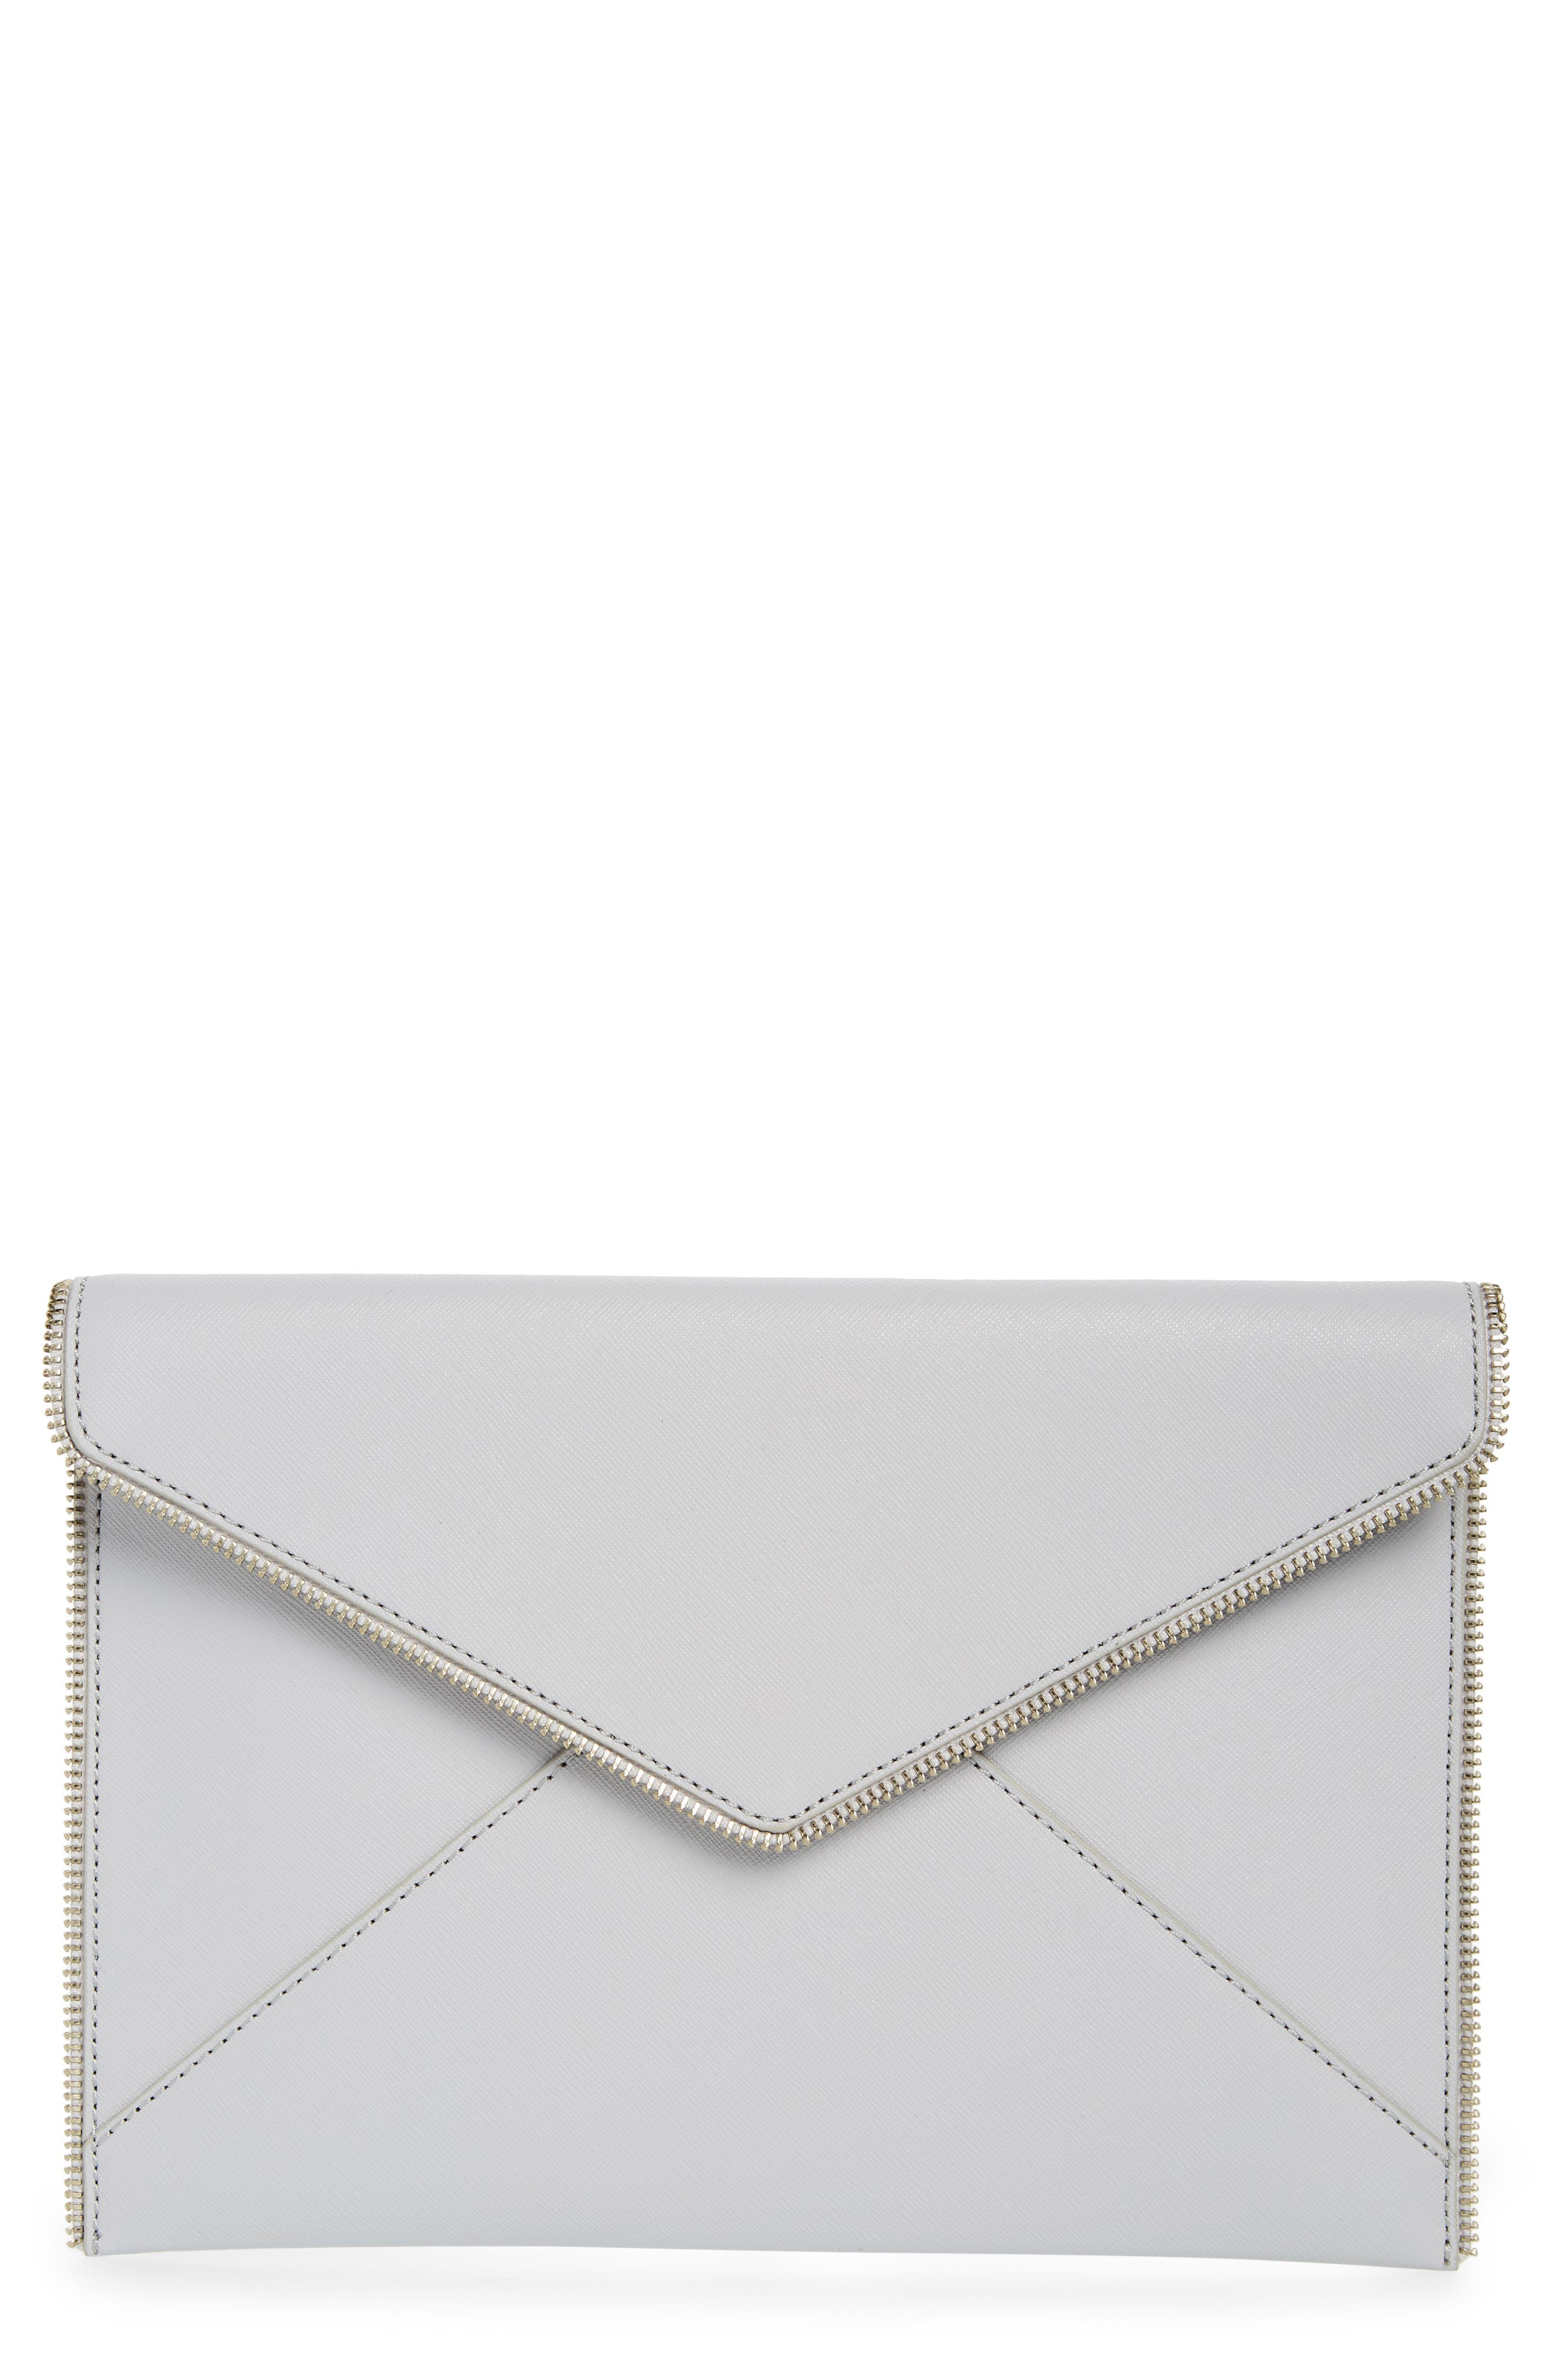 REBECCA MINKOFF Leo Envelope Clutch, Main, color, ICE GREY